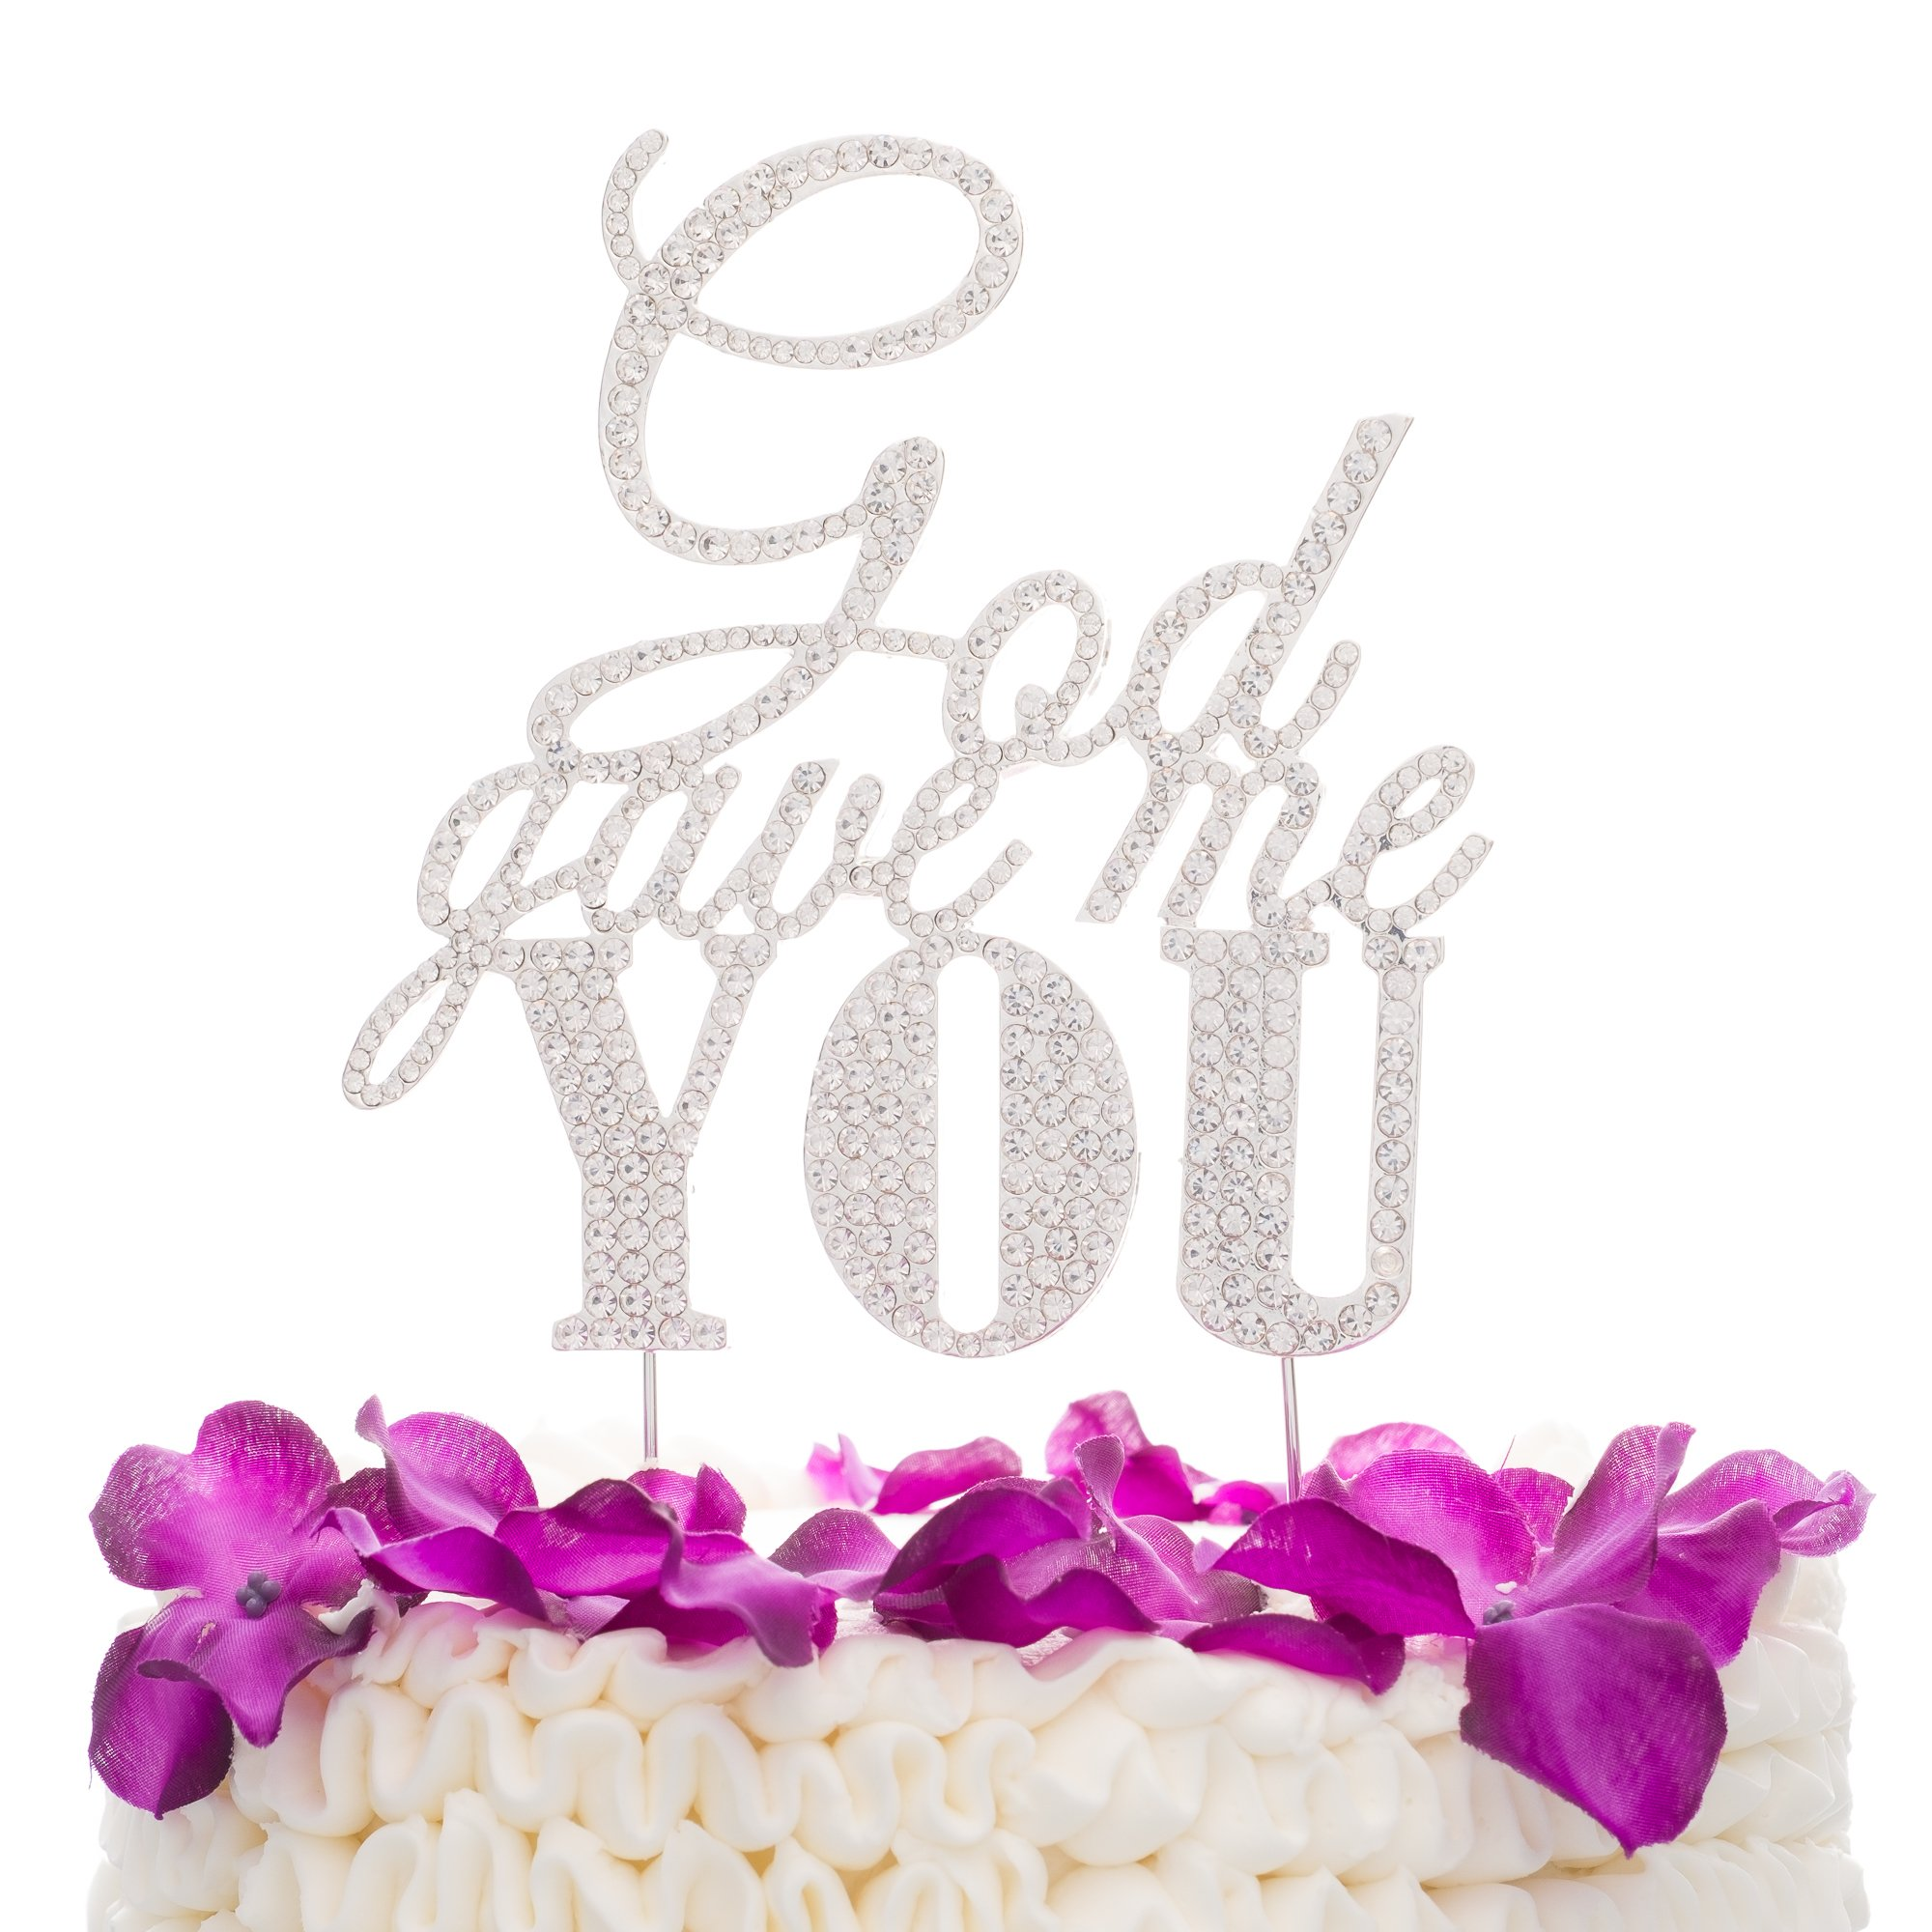 Ella Celebration God Gave Me You Wedding Cake Topper, Silver Religious Christian Party Decoration